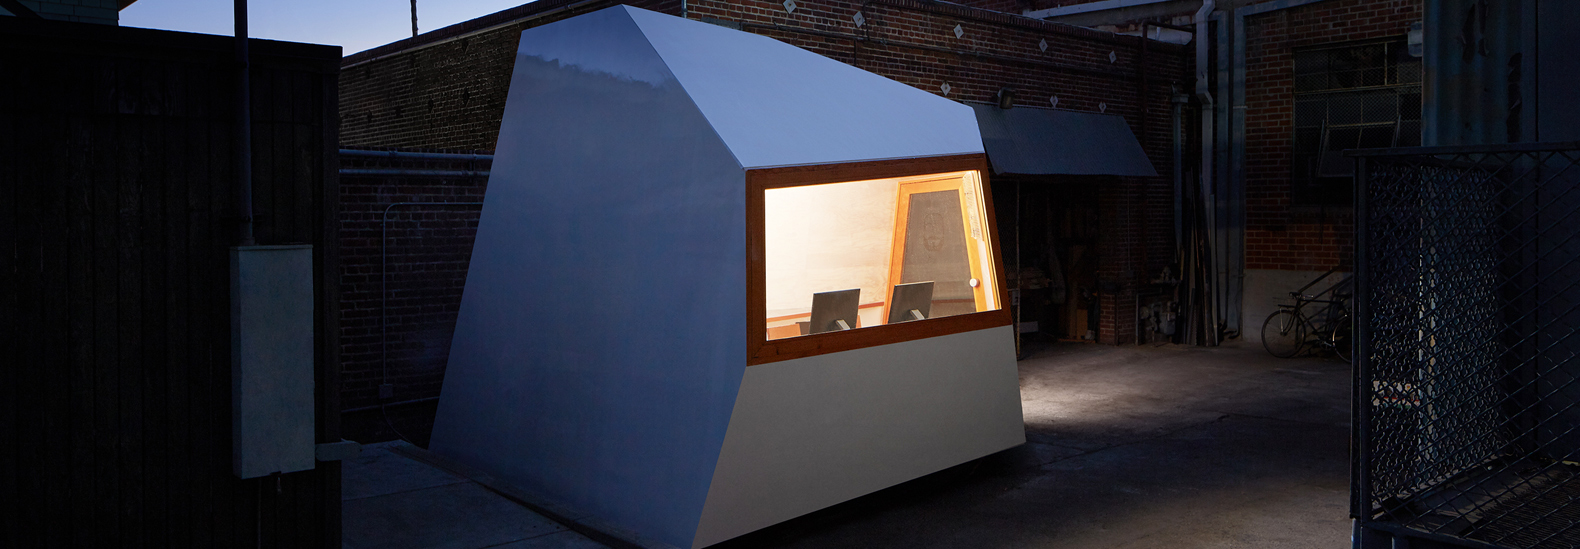 Office Pod Inhabitat